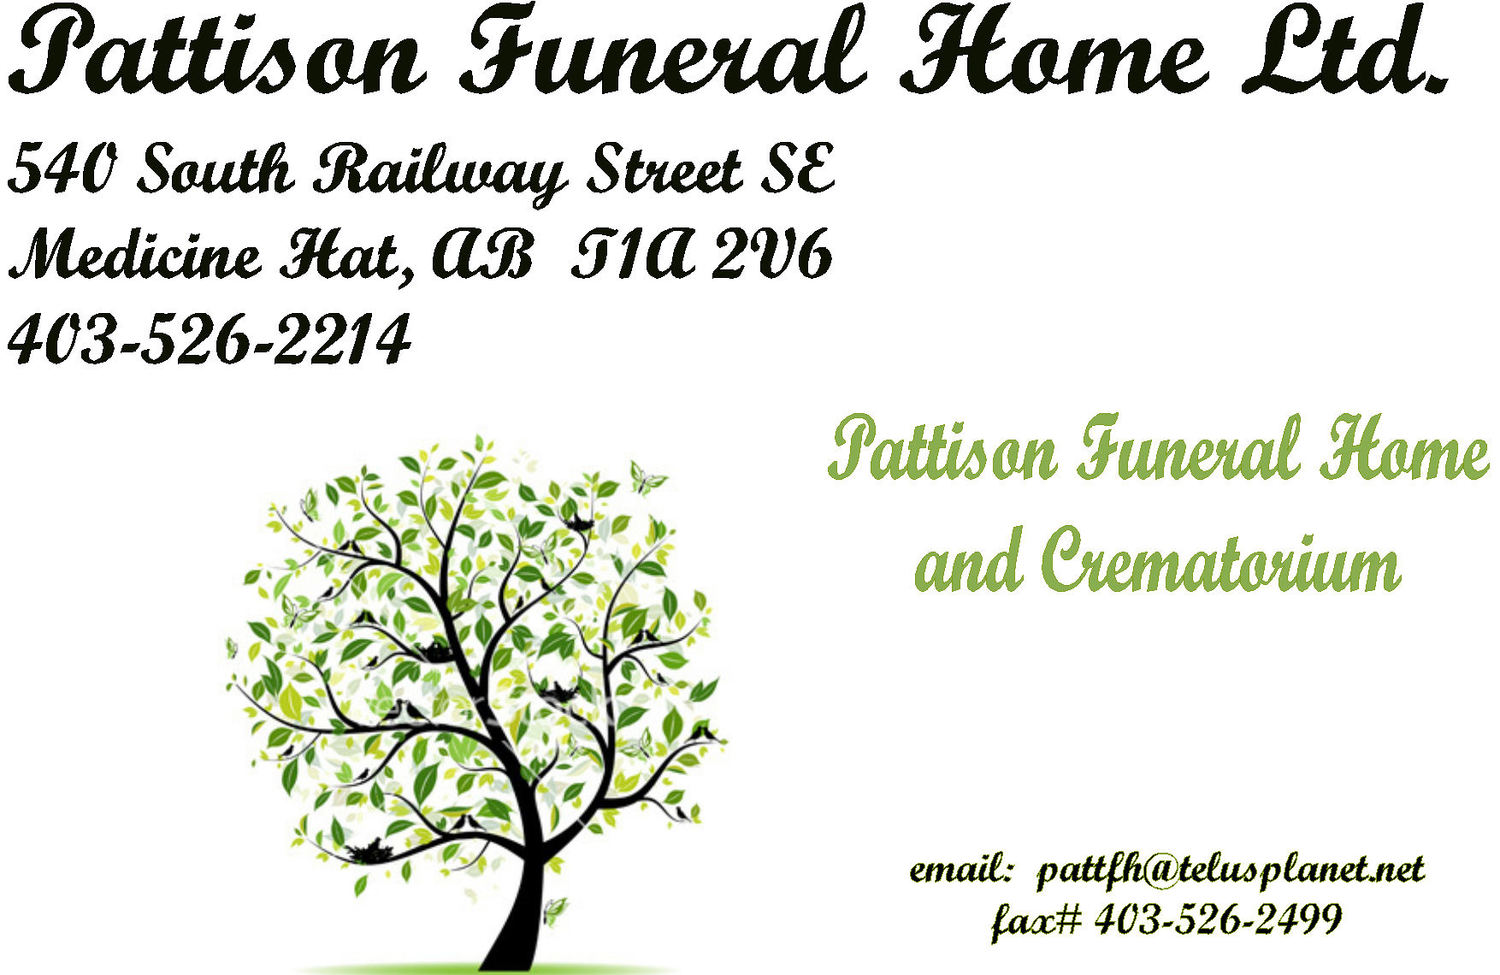 Pattison Funeral Home Ltd. and Crematorium 540 South Railway Street SE, Medicine Hat